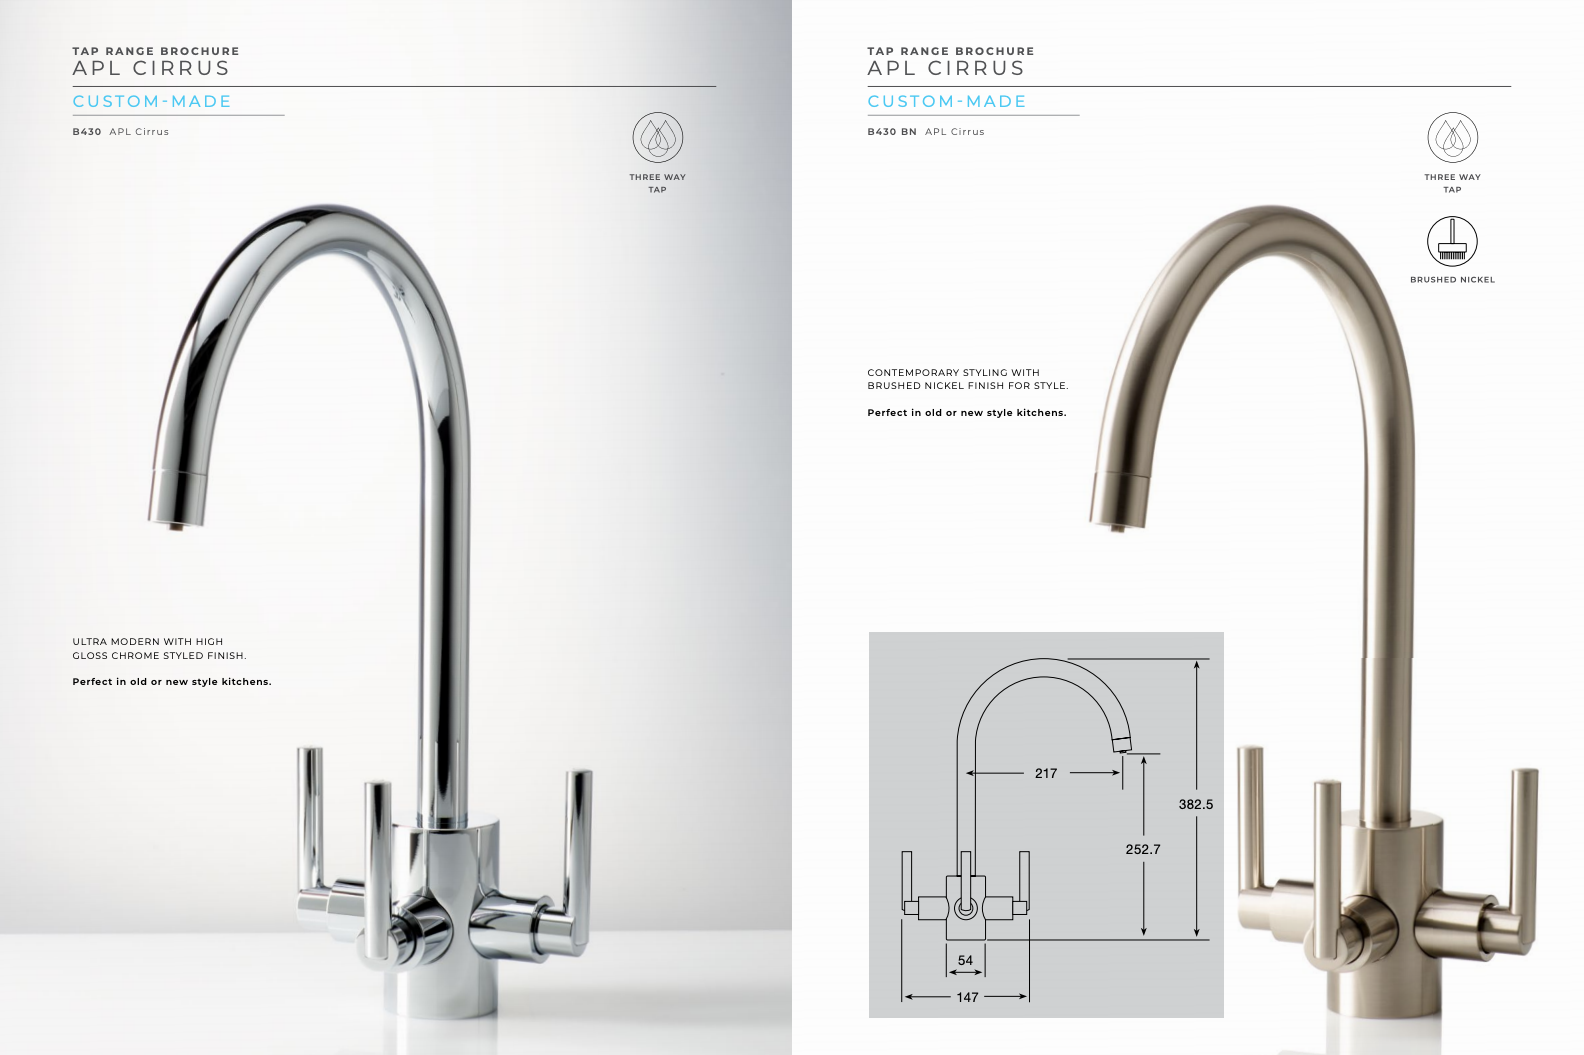 APL Cirrus 3-way drinking water taps